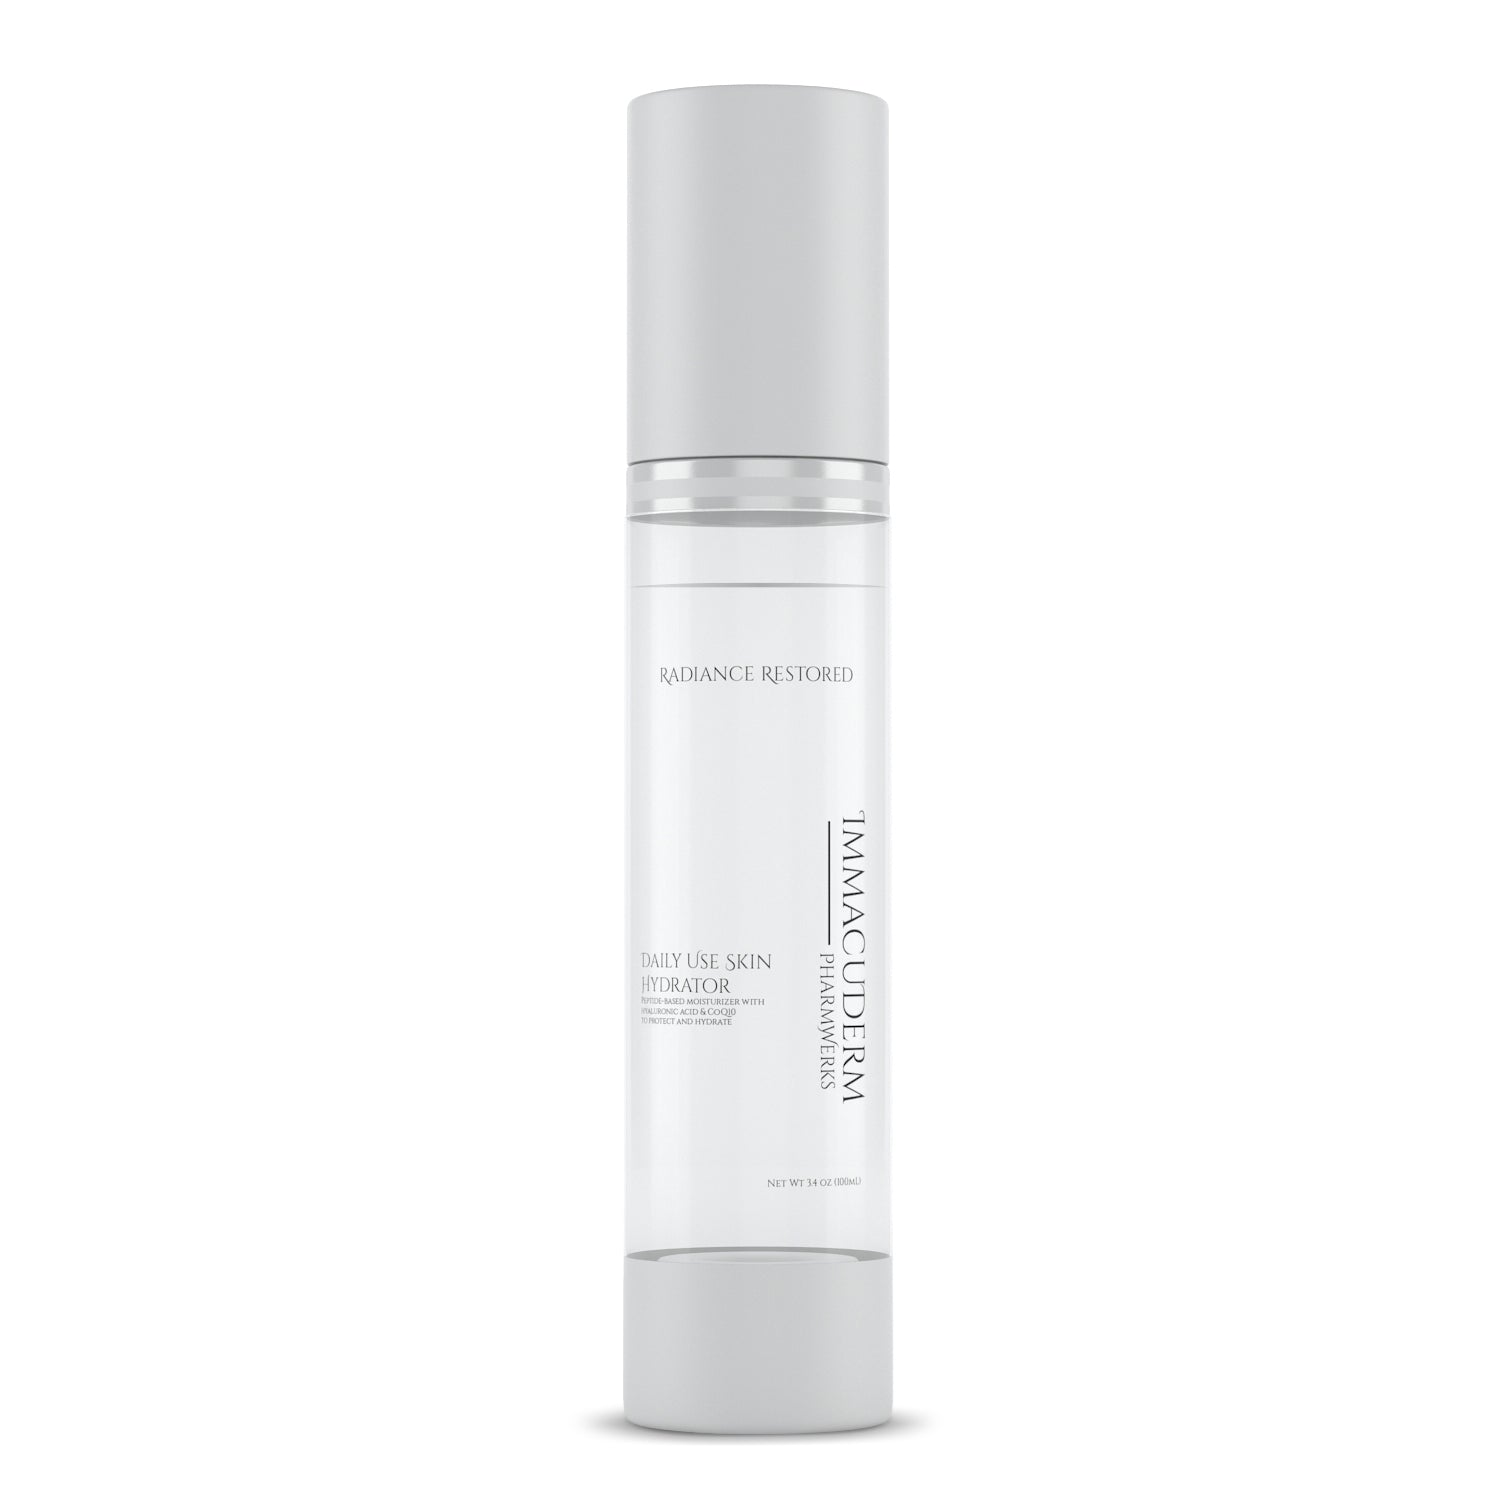 ImmacuDerm Daily Use Skin Hydrator: A Beauty Must-Have